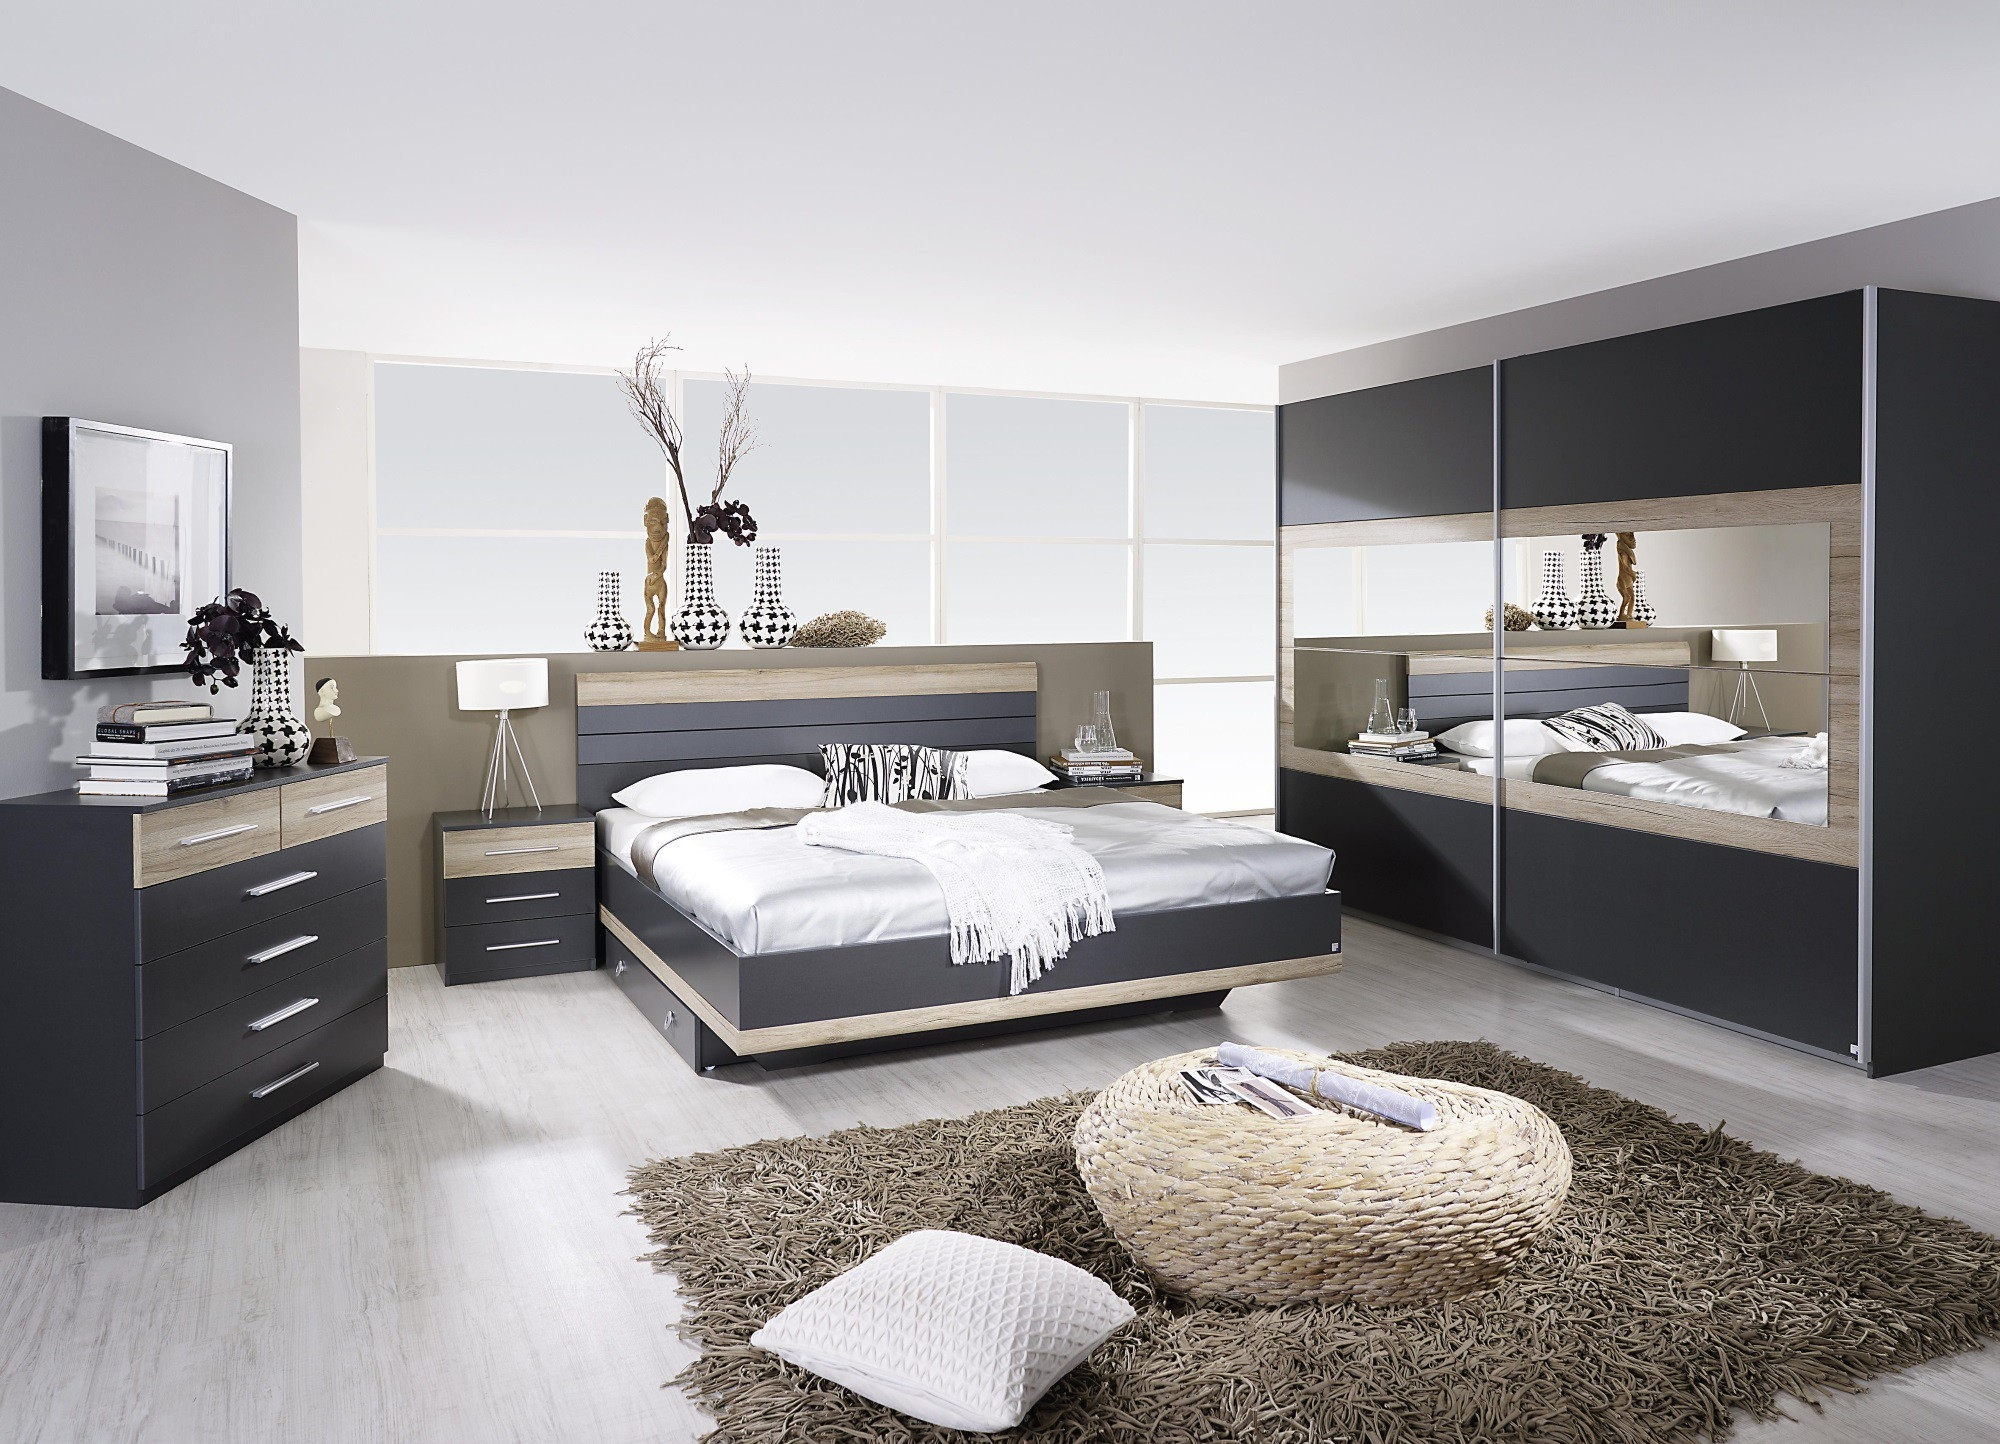 Chambre adulte compl te contemporaine gris ch ne clair for Destockage chambre complete adulte